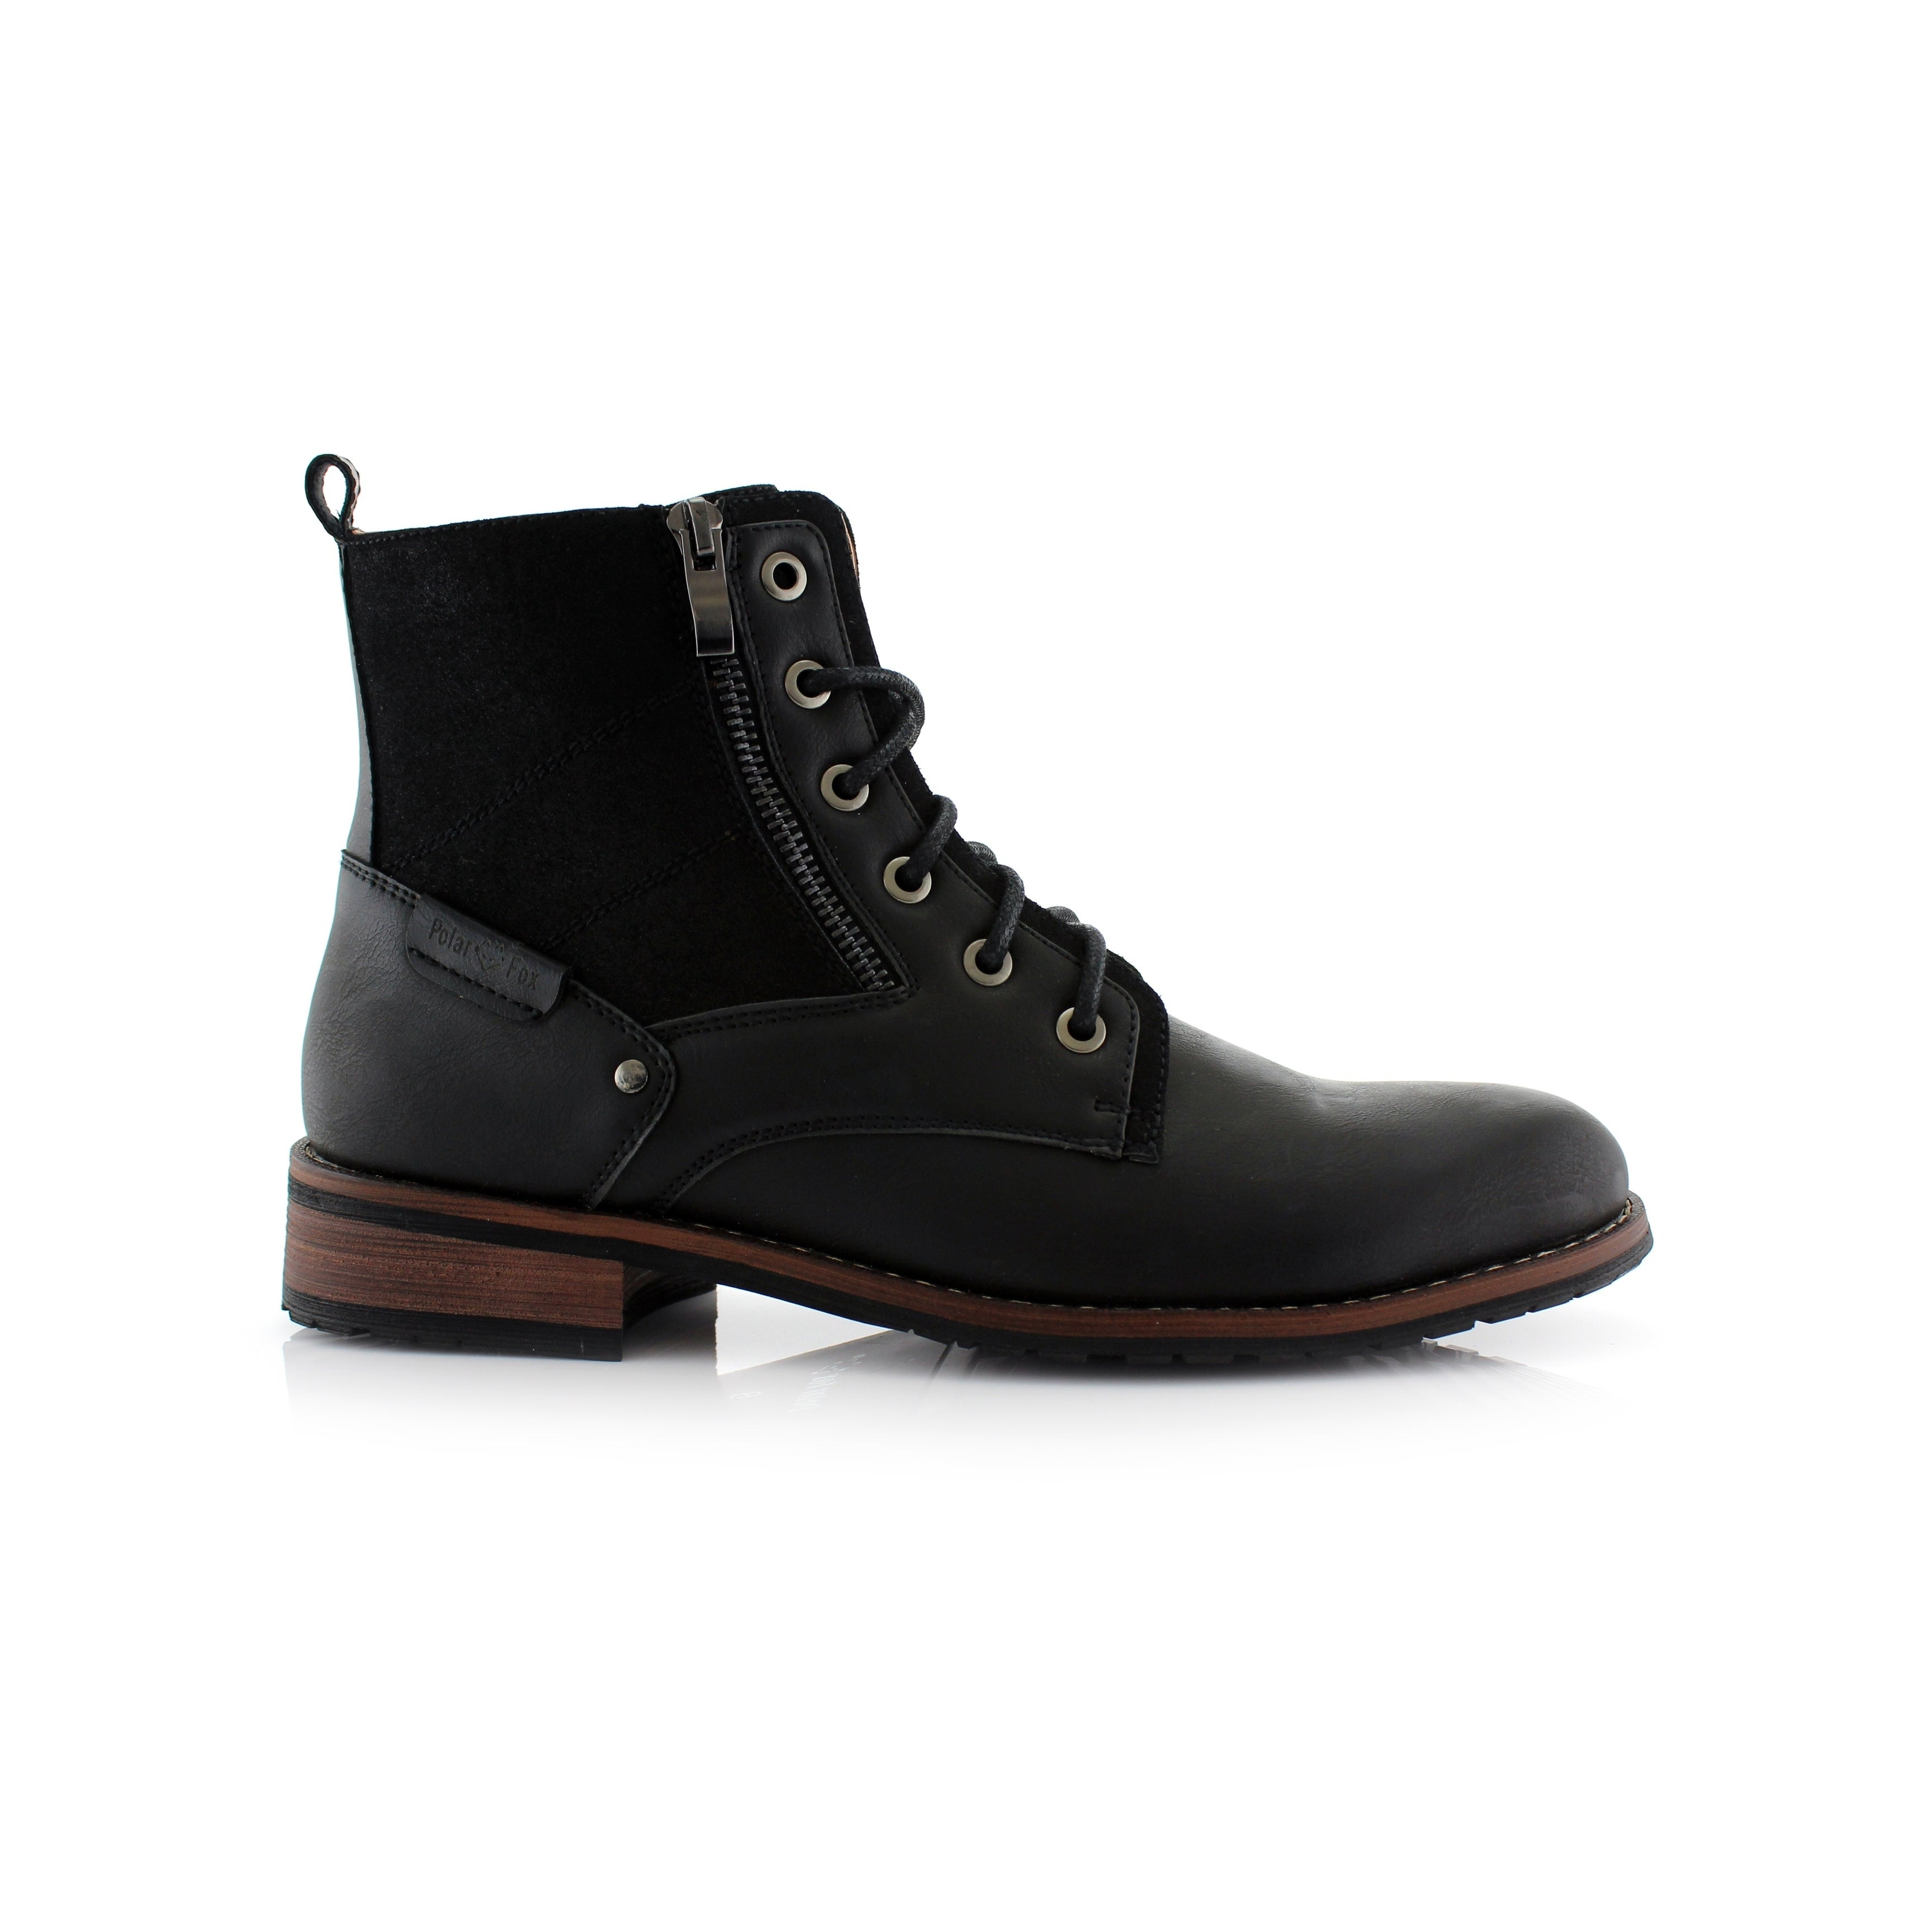 c8cb10de4 Shop Polar Fox Harrison MPX808582 Men's Dress Ankle Boots For Work or  Casual Wear - Free Shipping Today - Overstock - 17983249